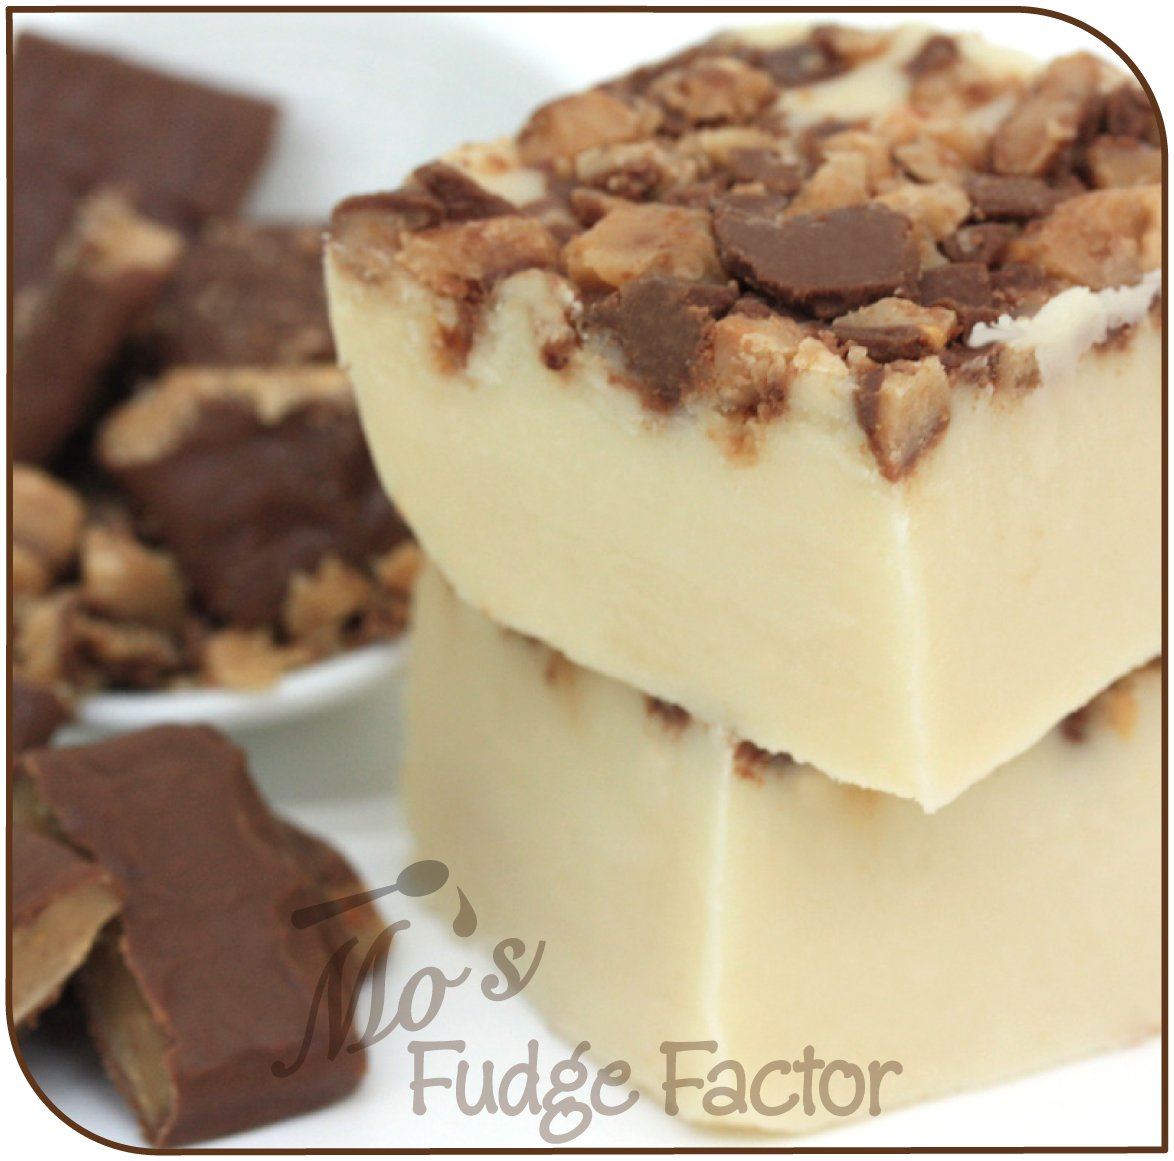 Amazon.com : Mos Fudge Factor, Vanilla Butter Crunch Fudge 1 pound : Grocery & Gourmet Food